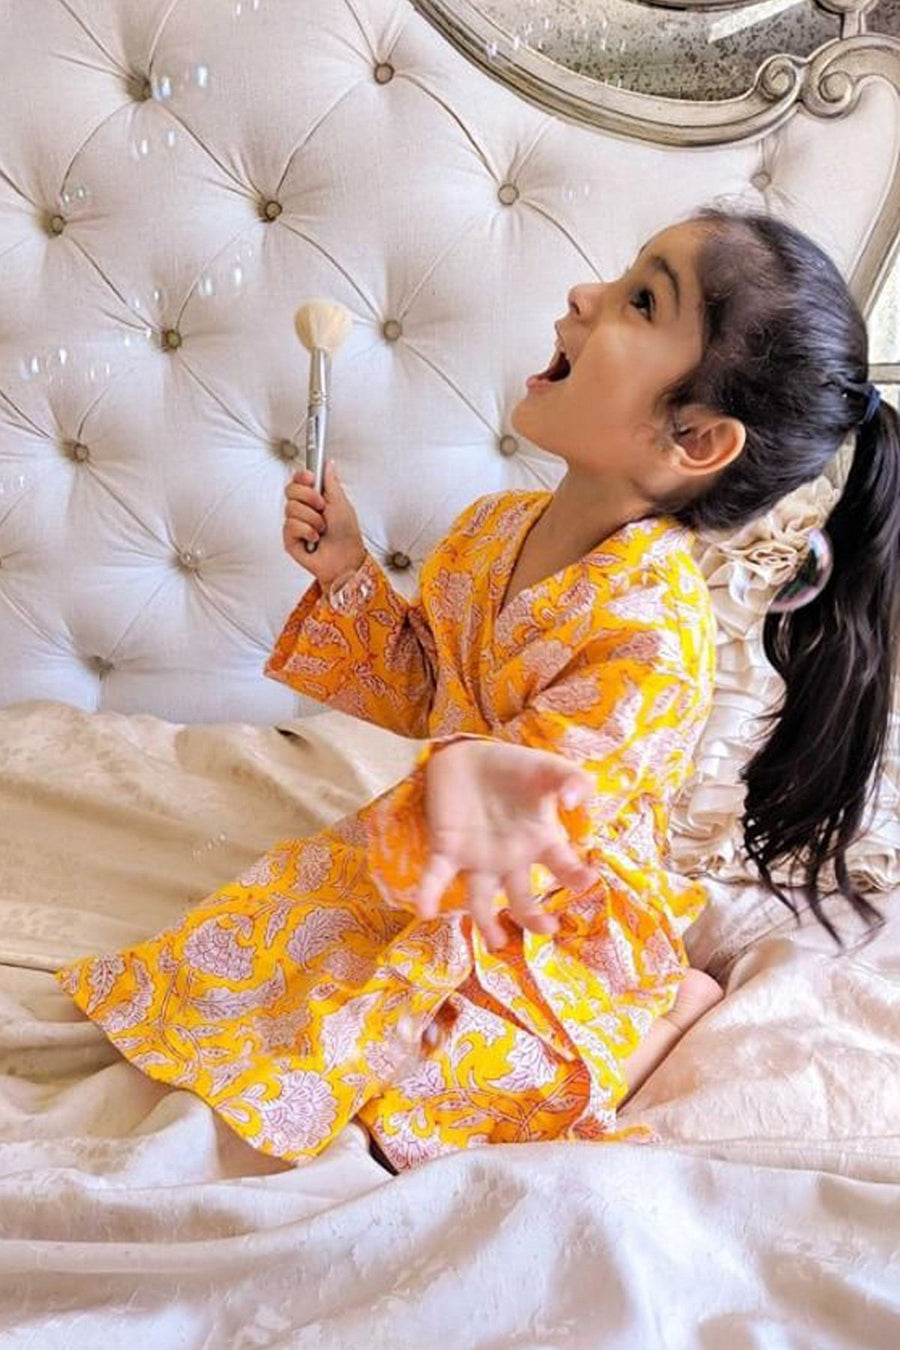 Dressing Robe - Girl's Robe In Marigold